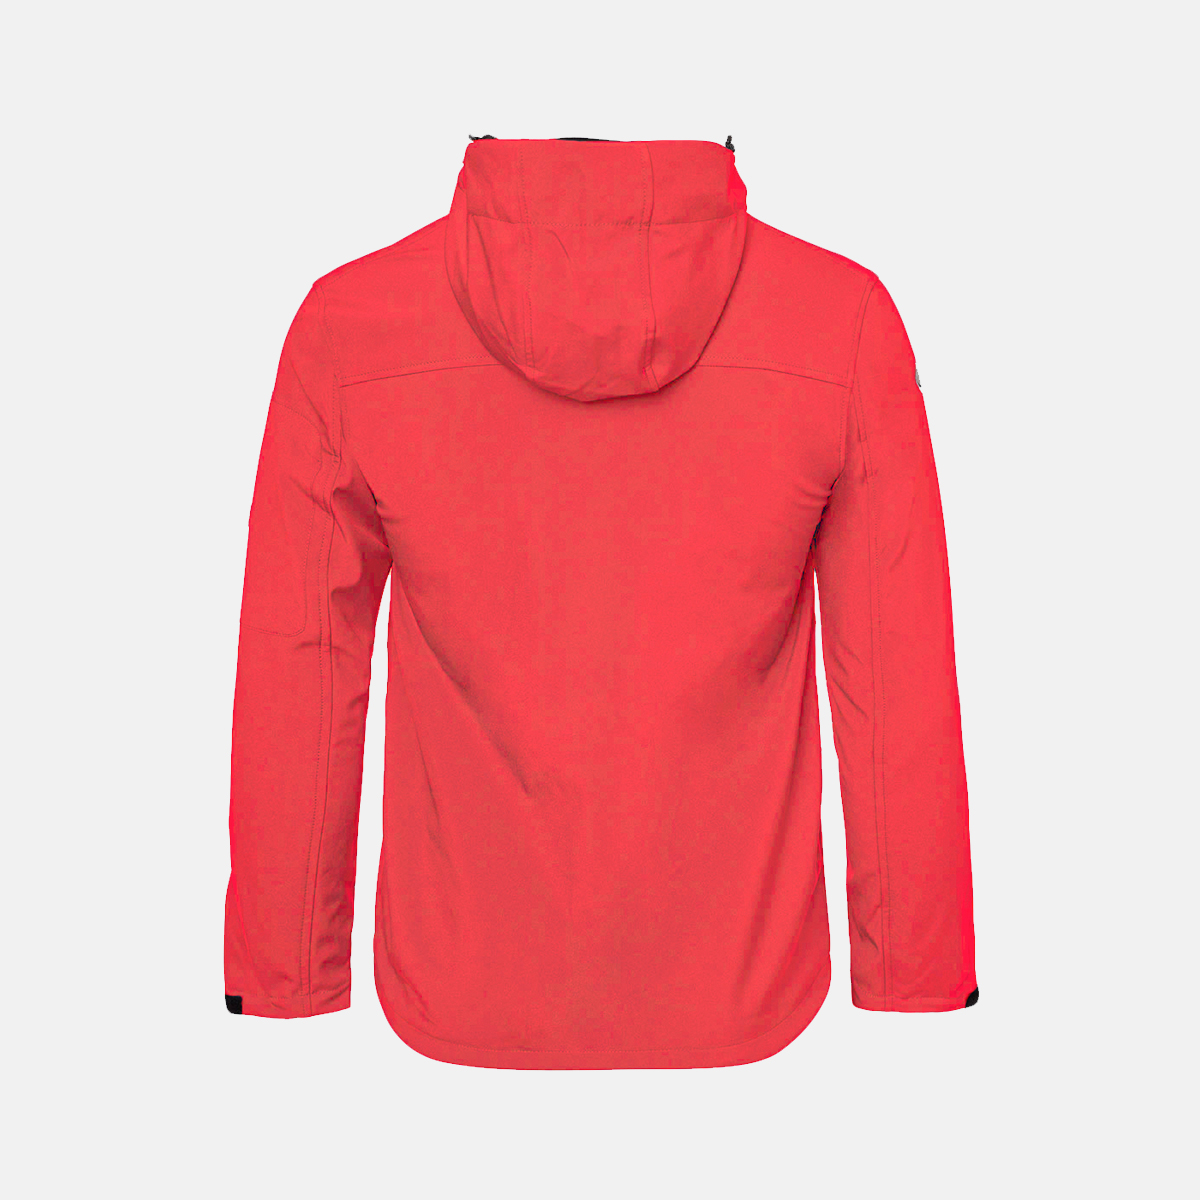 MAN'S BERRY SOFTSHELL RED